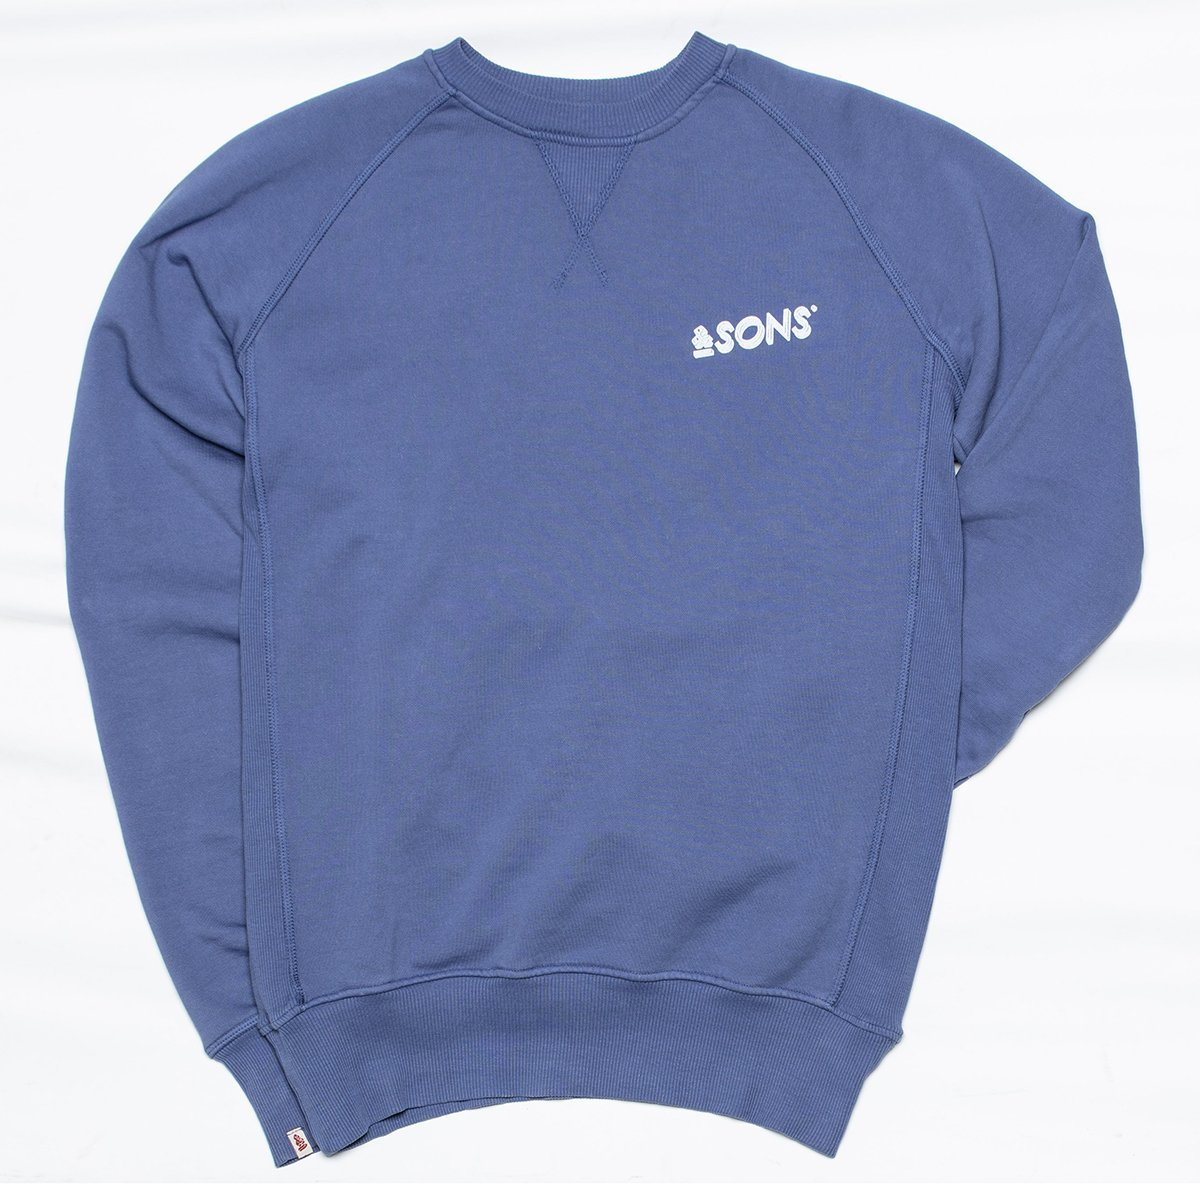 &SONS | Sky Blue Logo Sweatshirt Unisex | Light Blue Retro Sweatshirt | Sky Blue